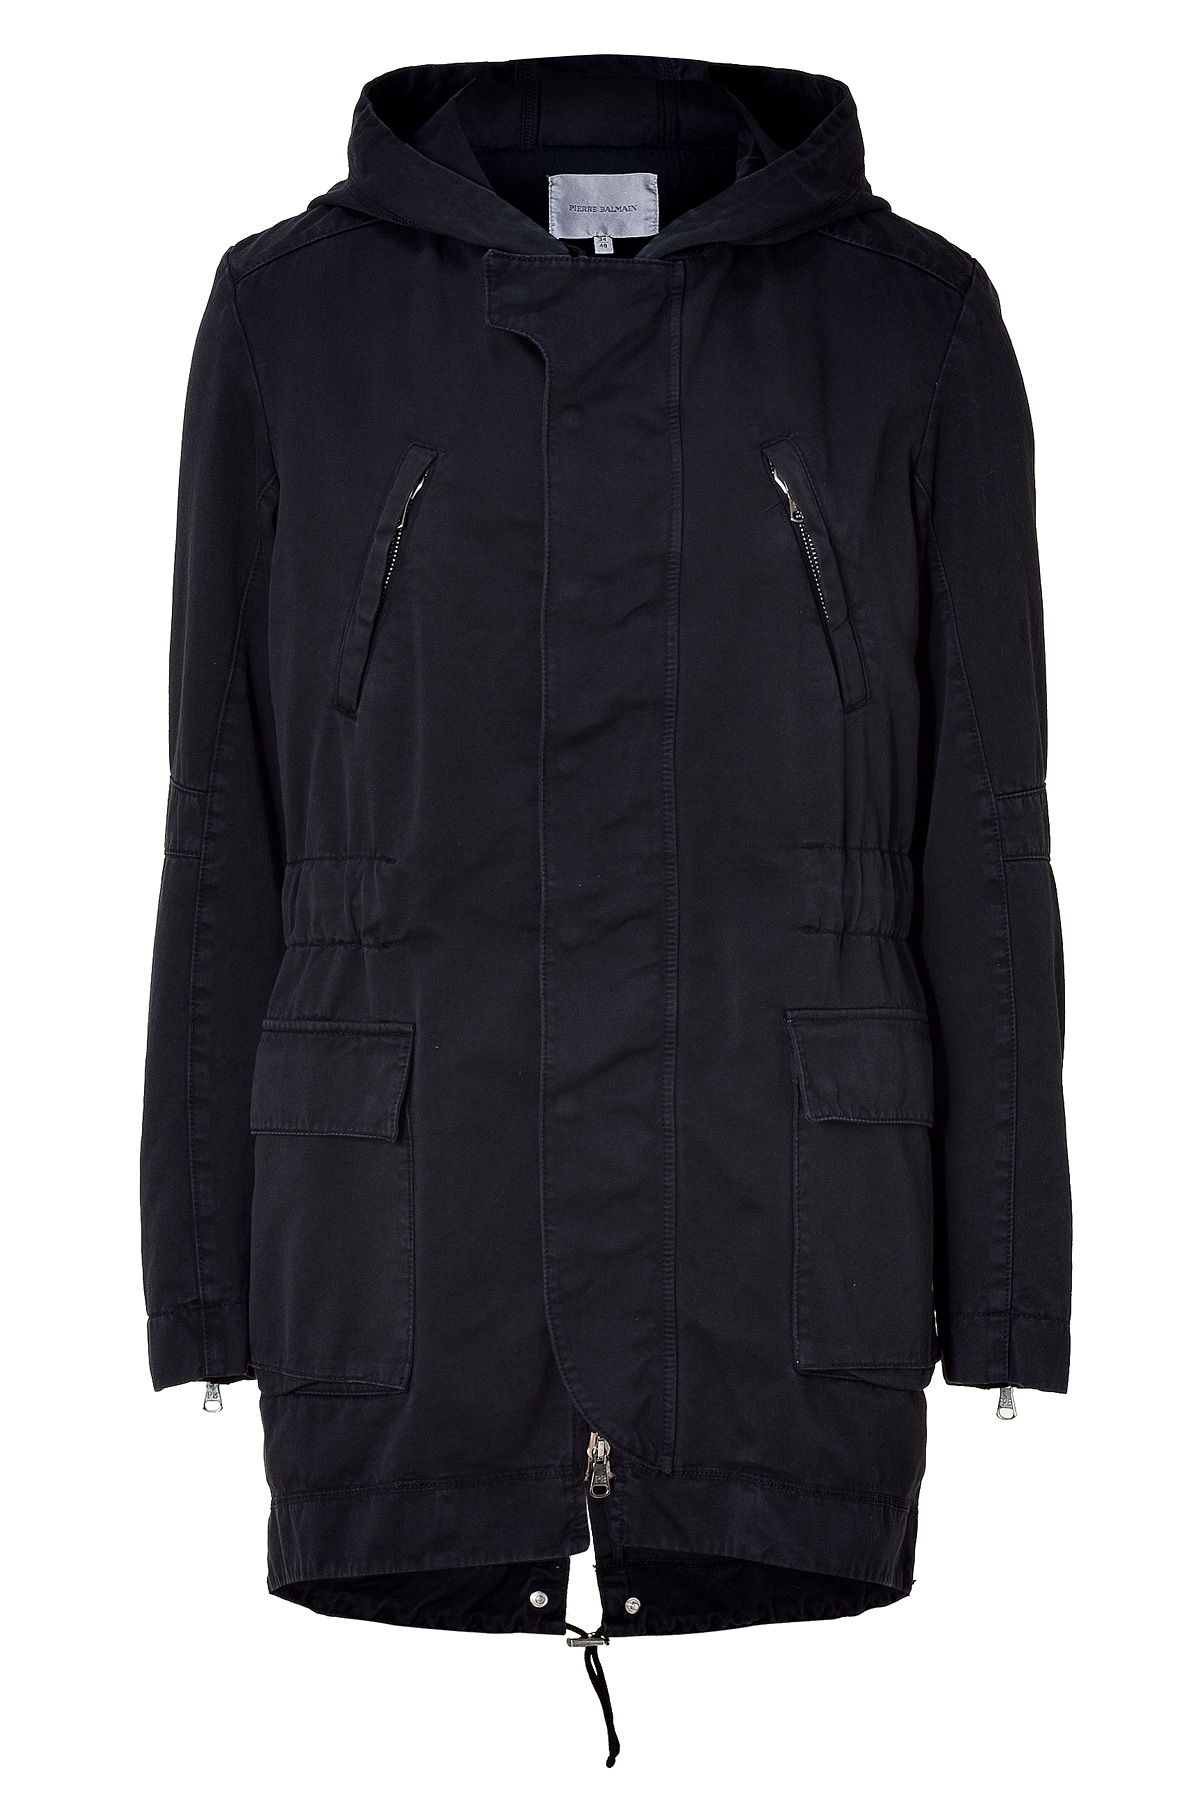 Balmain Antik Black Cotton Parka in Black for Men | Lyst